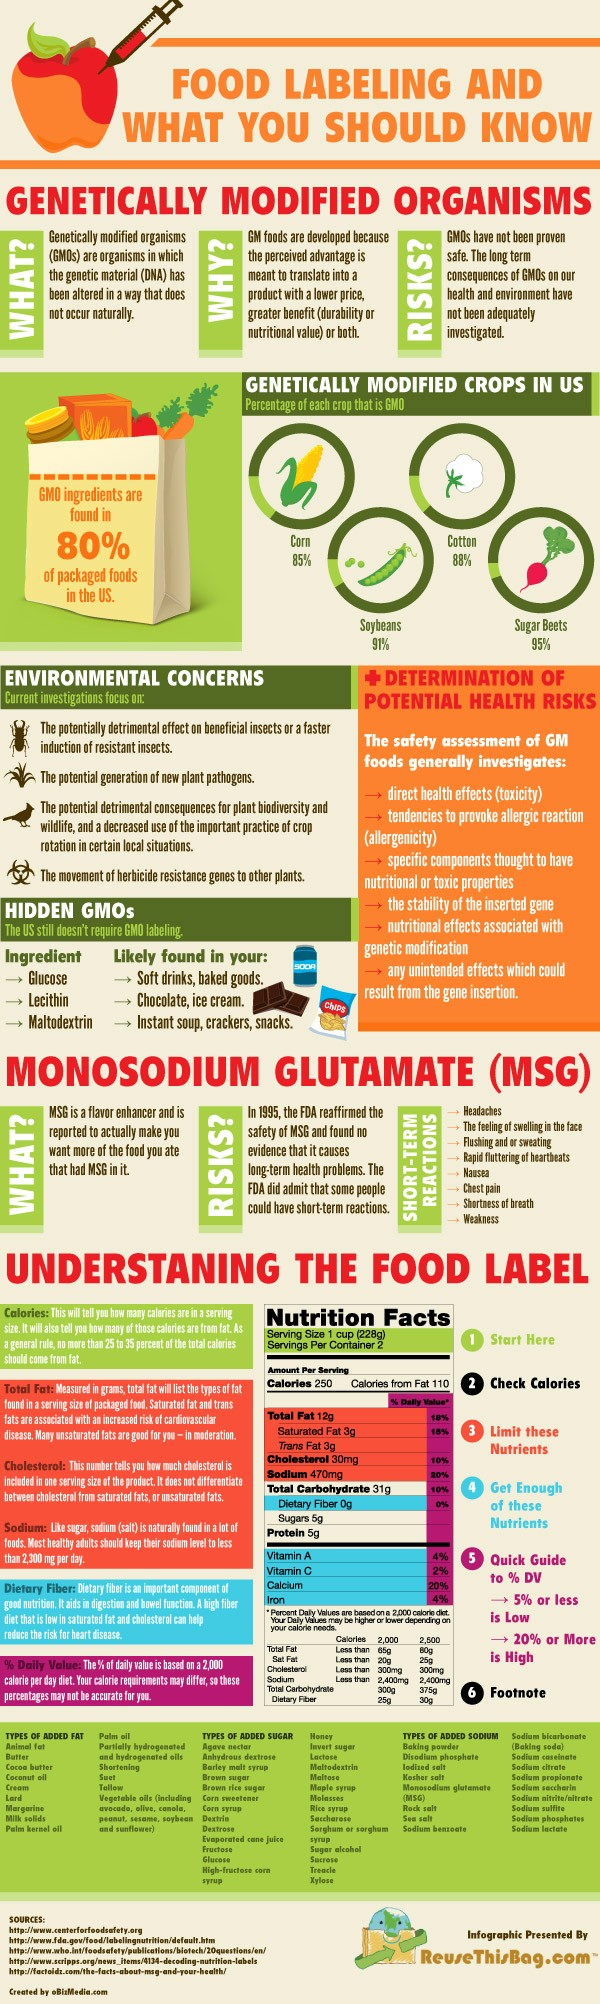 Food Labeling and What You Should Know